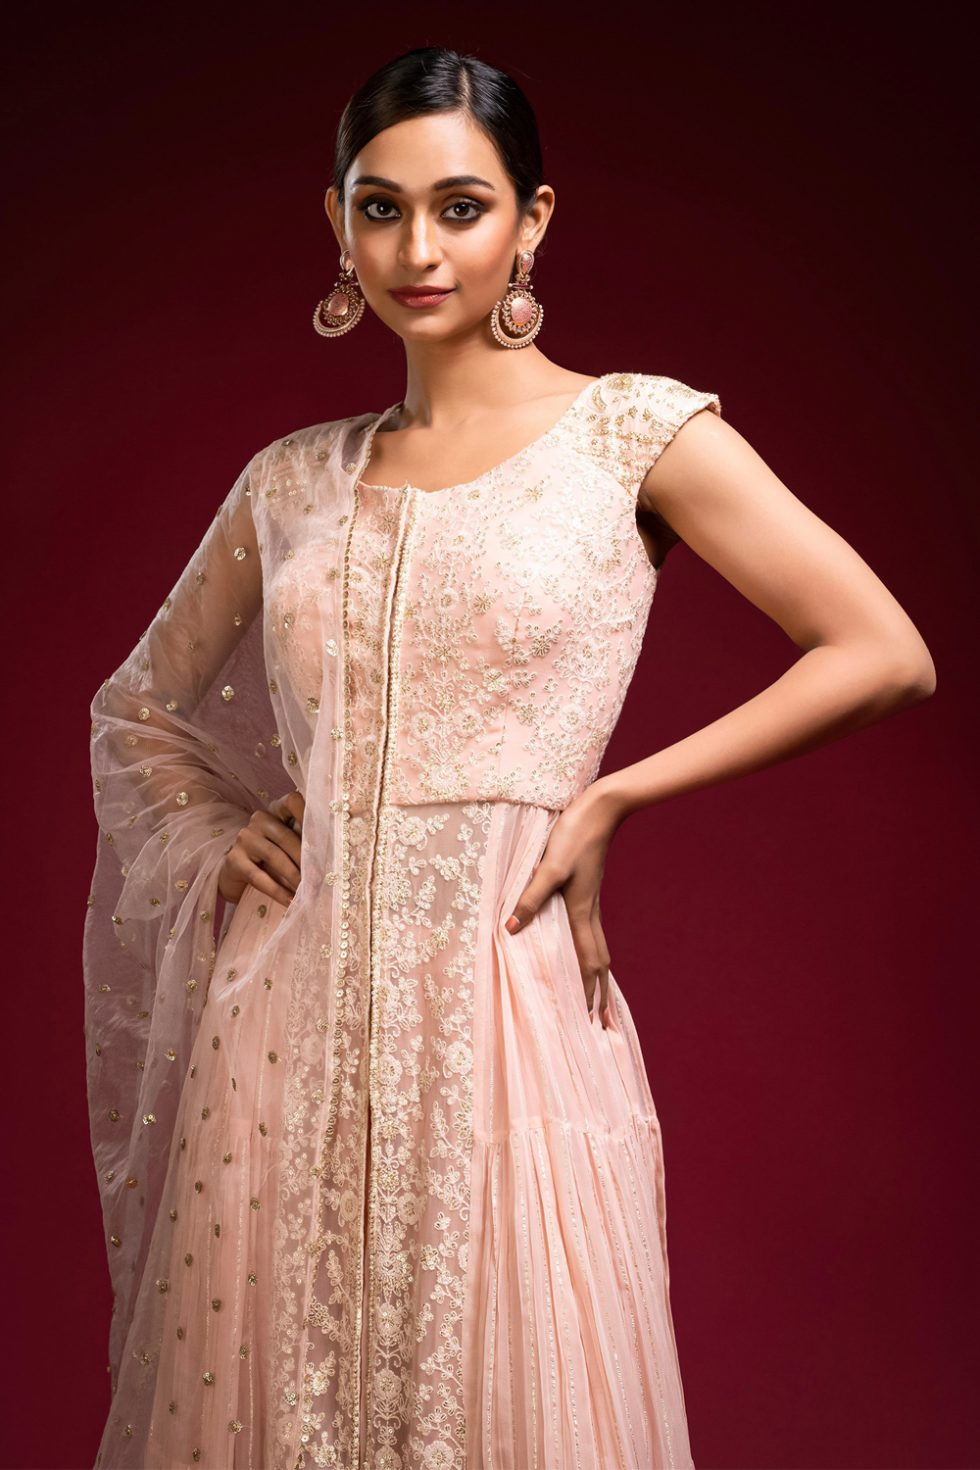 Pinkish peach palazzo pant set with a gold patterned tier panelled chikan long kurta top paired with a matching dupatta and gold butis.